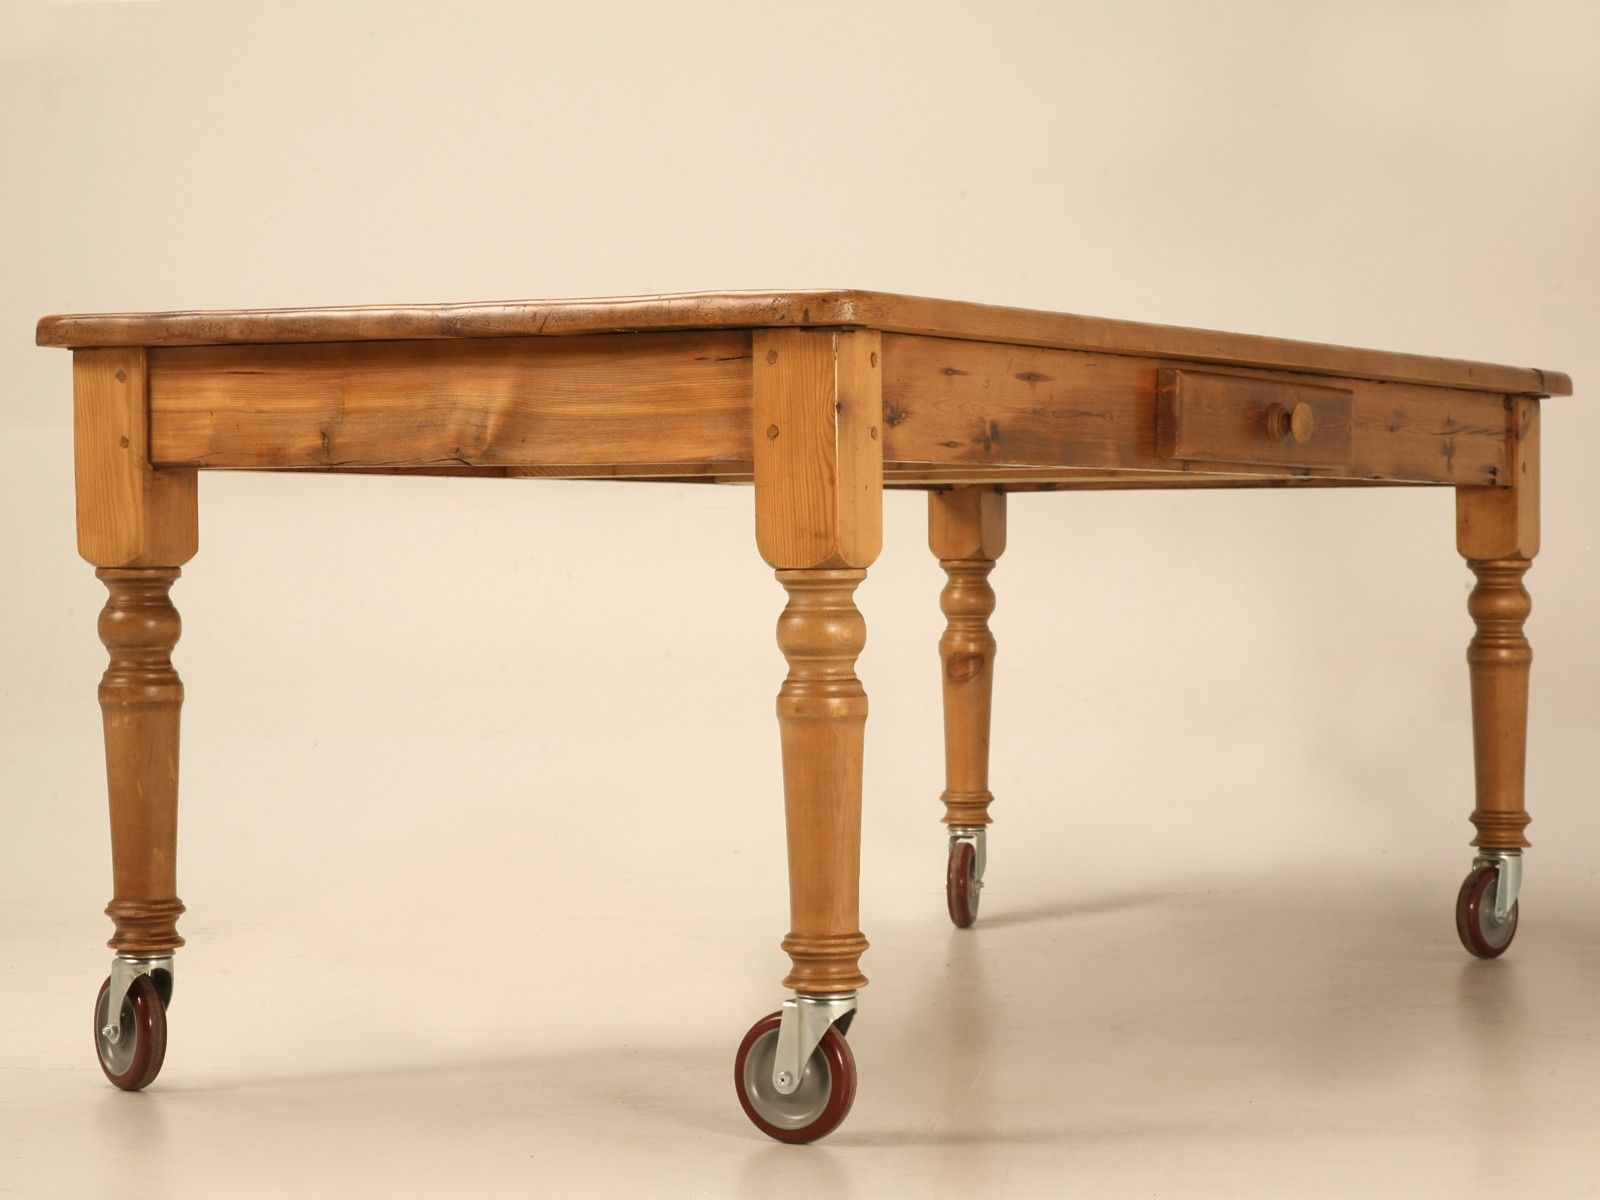 Rustic 84 Inch Handmade English Pine Table With Drawer And Casters